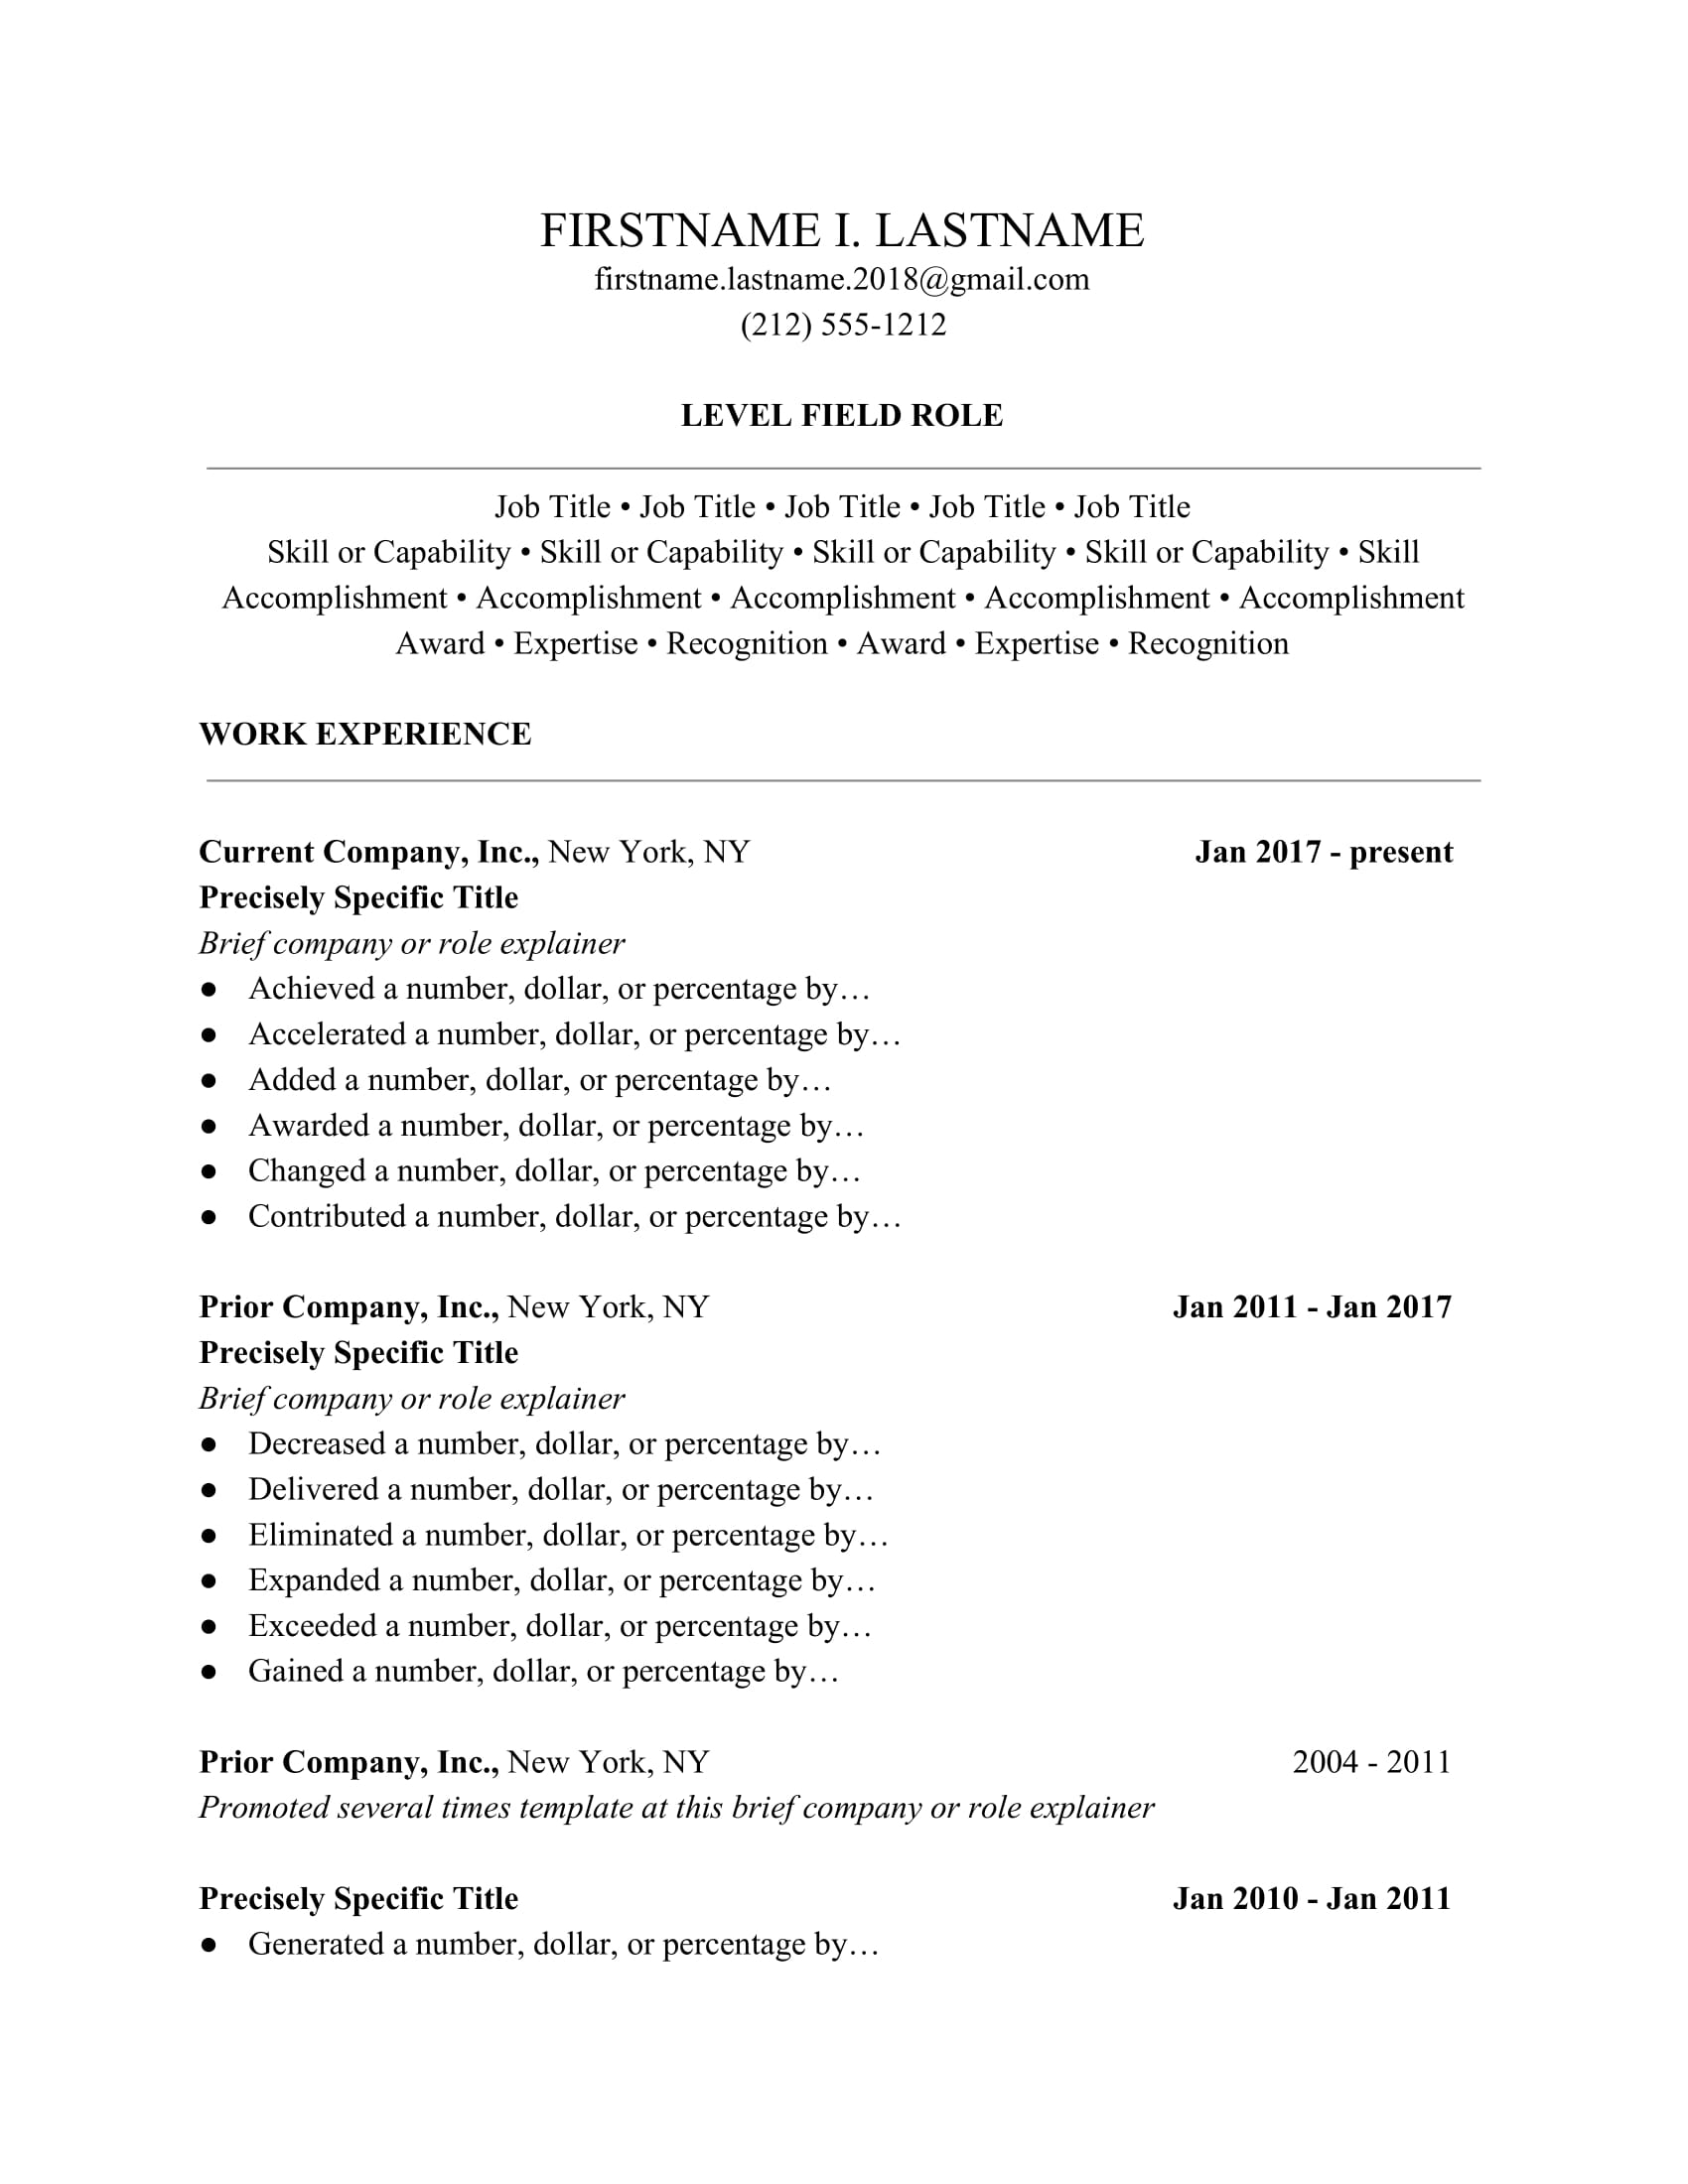 Ladders 2018 Resume Guide Free Resume Templates Ladders Career